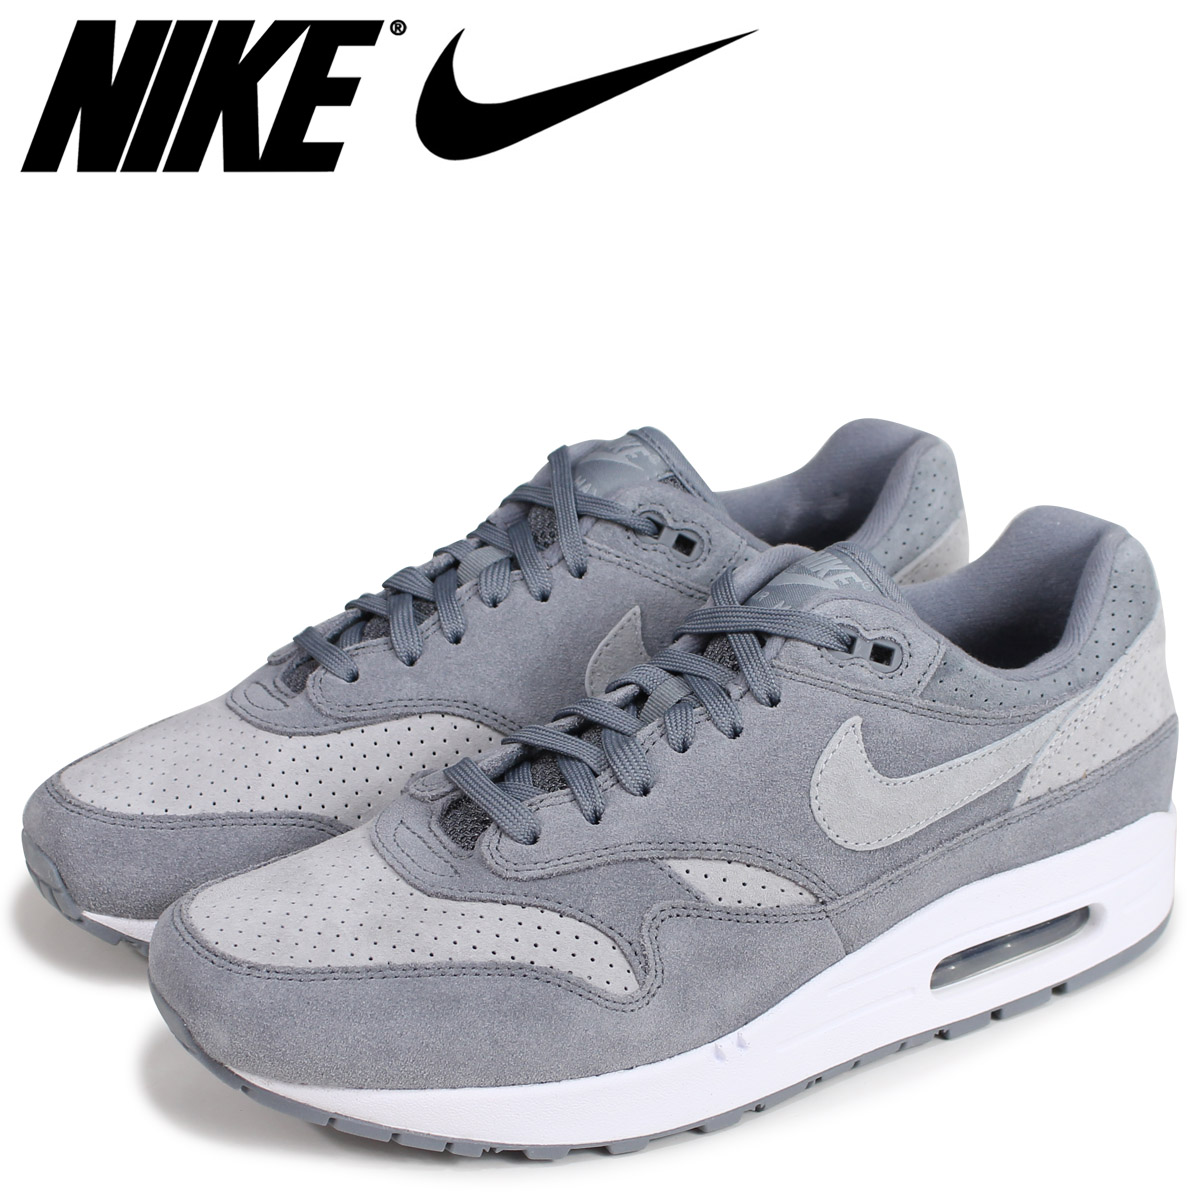 Nike Air Max 1 Premium Shoes 60items | Rakuten Global Market